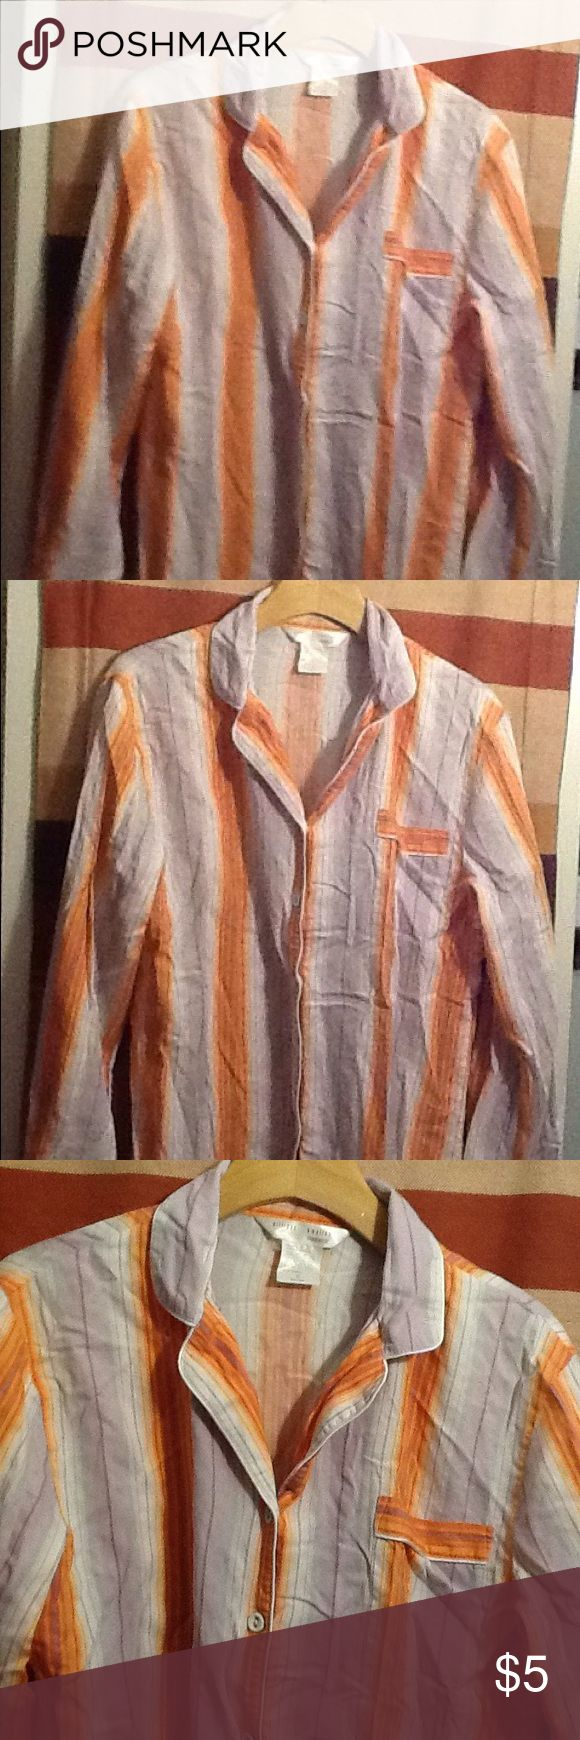 Women's pajama top This is just a women's pajama top. It is a long sleeve button up. Gilligan & O'Malley Intimates & Sleepwear Pajamas